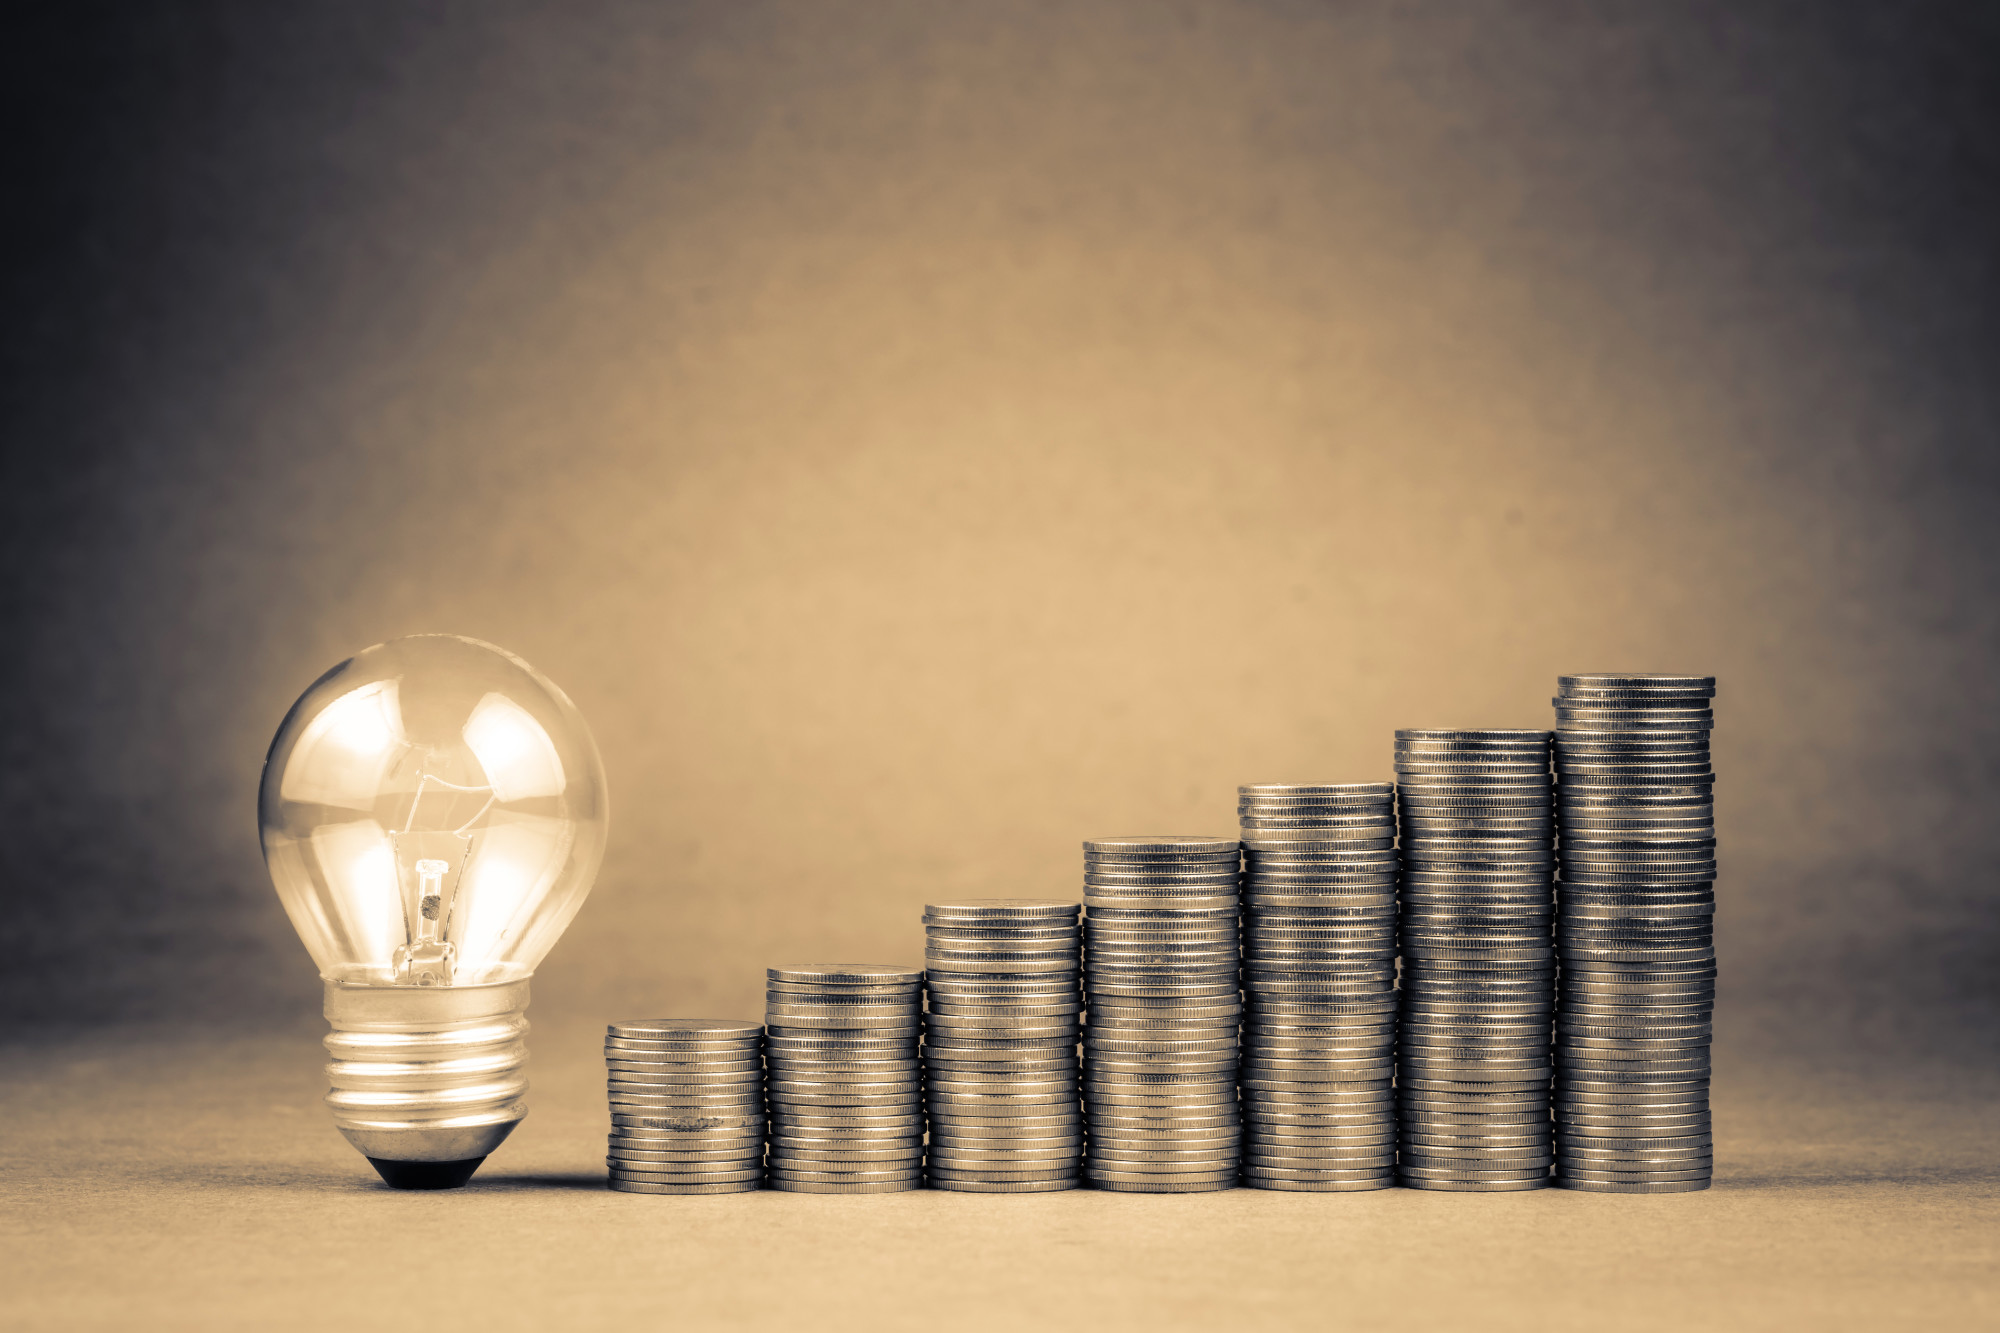 lightbulb and stacks of coins